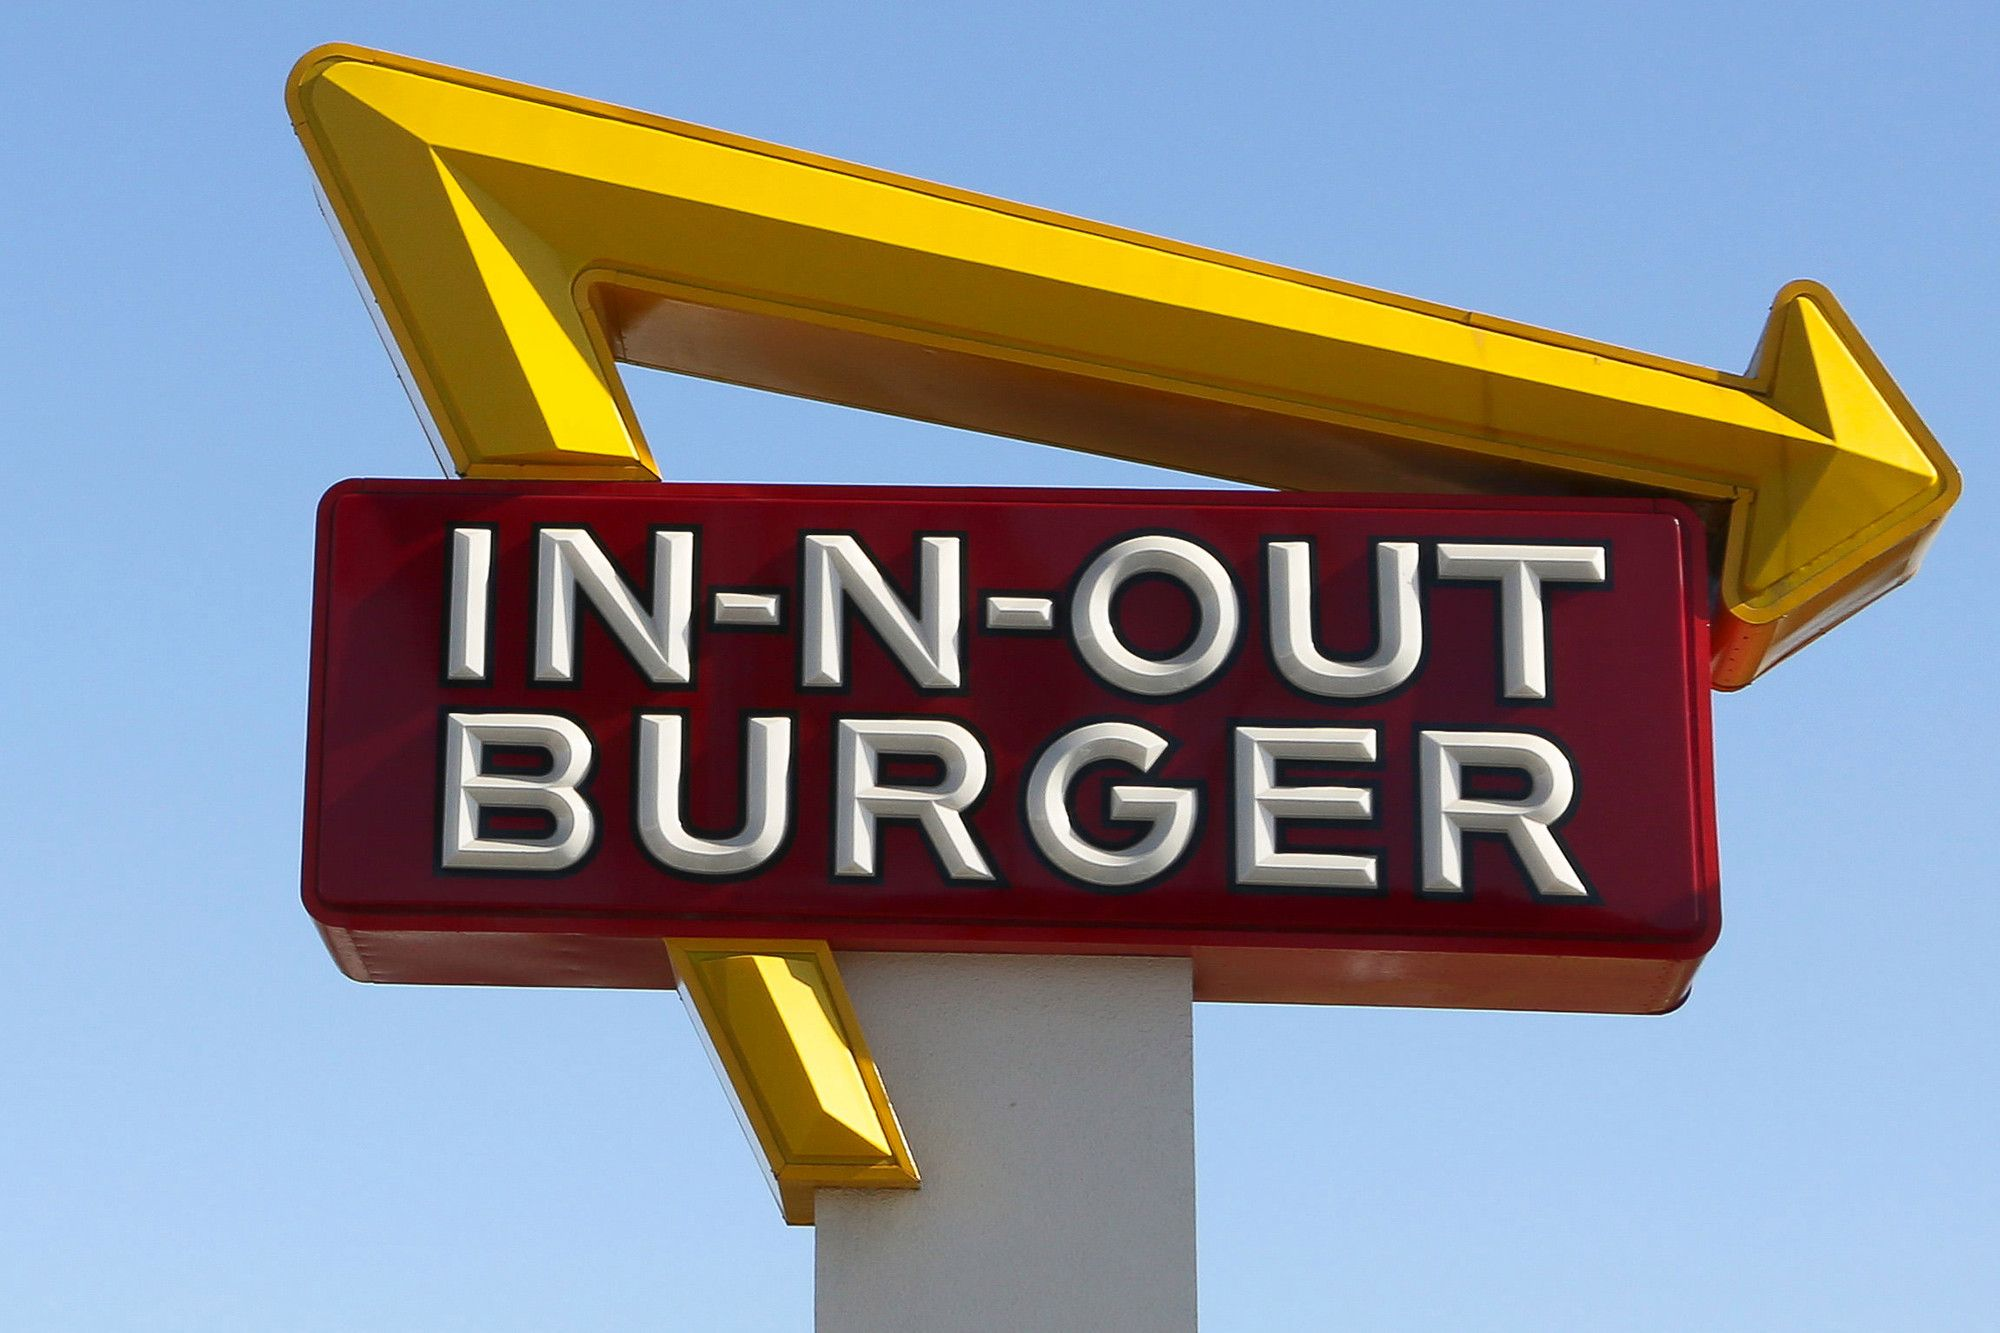 In-N-Out Burger Logo - In-N-Out adds first new item to menu in more than a decade